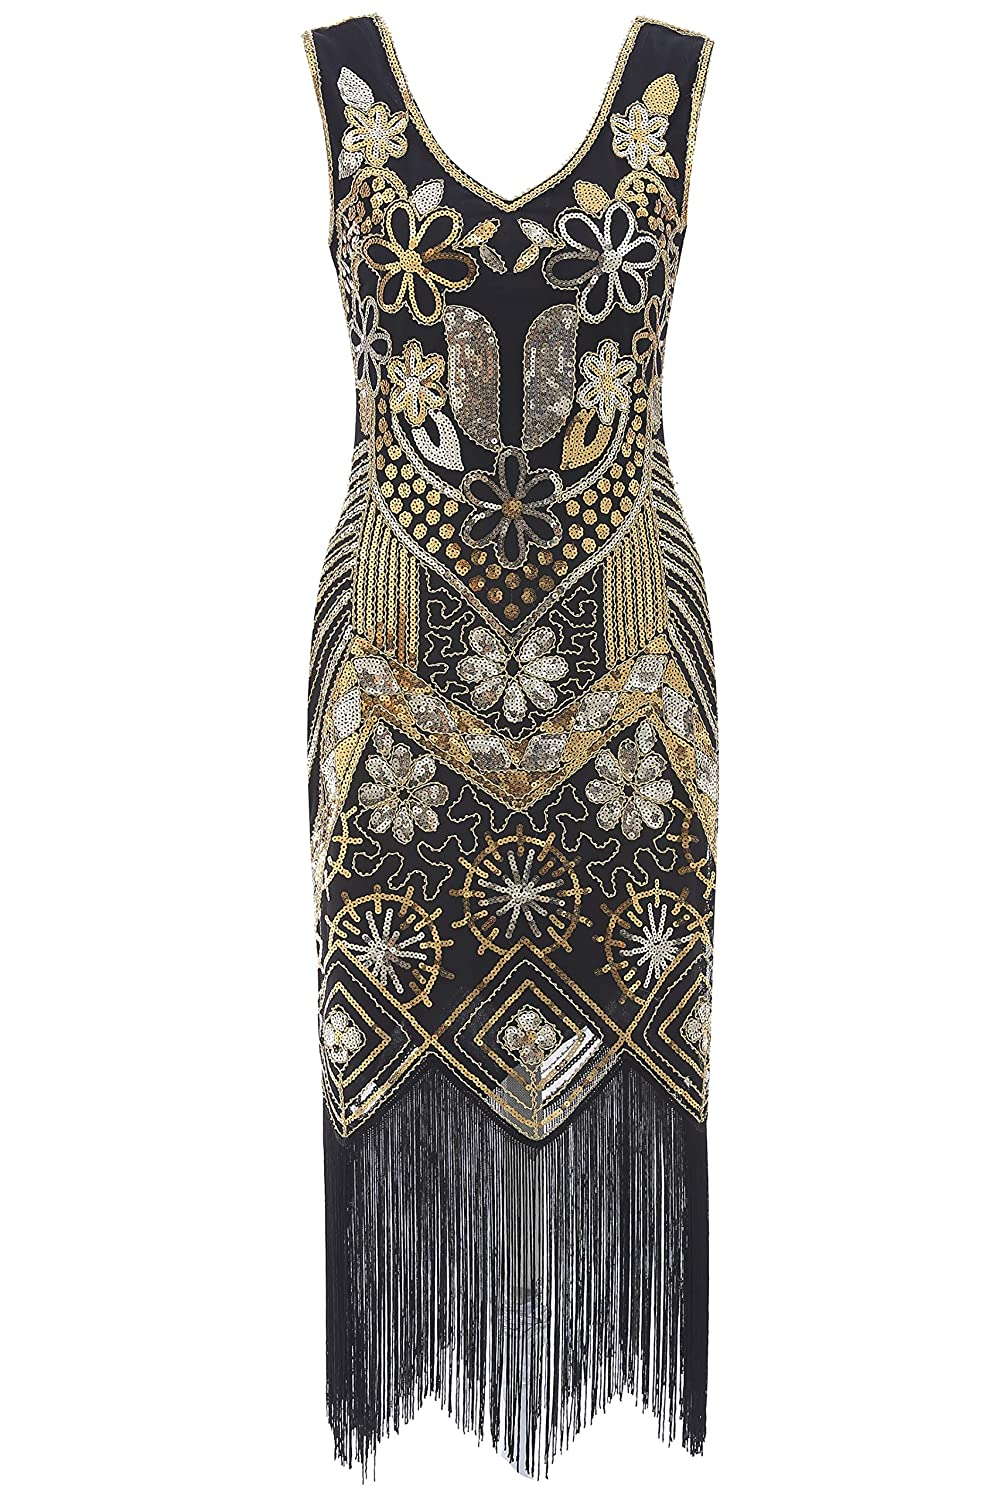 Roaring 20s Costumes- Flapper Costumes, Gangster Costumes Metme 1920s Flapper Dress Great Gatsby Costume Fringed Sequin Art Deco 20s Dress for Women $39.99 AT vintagedancer.com